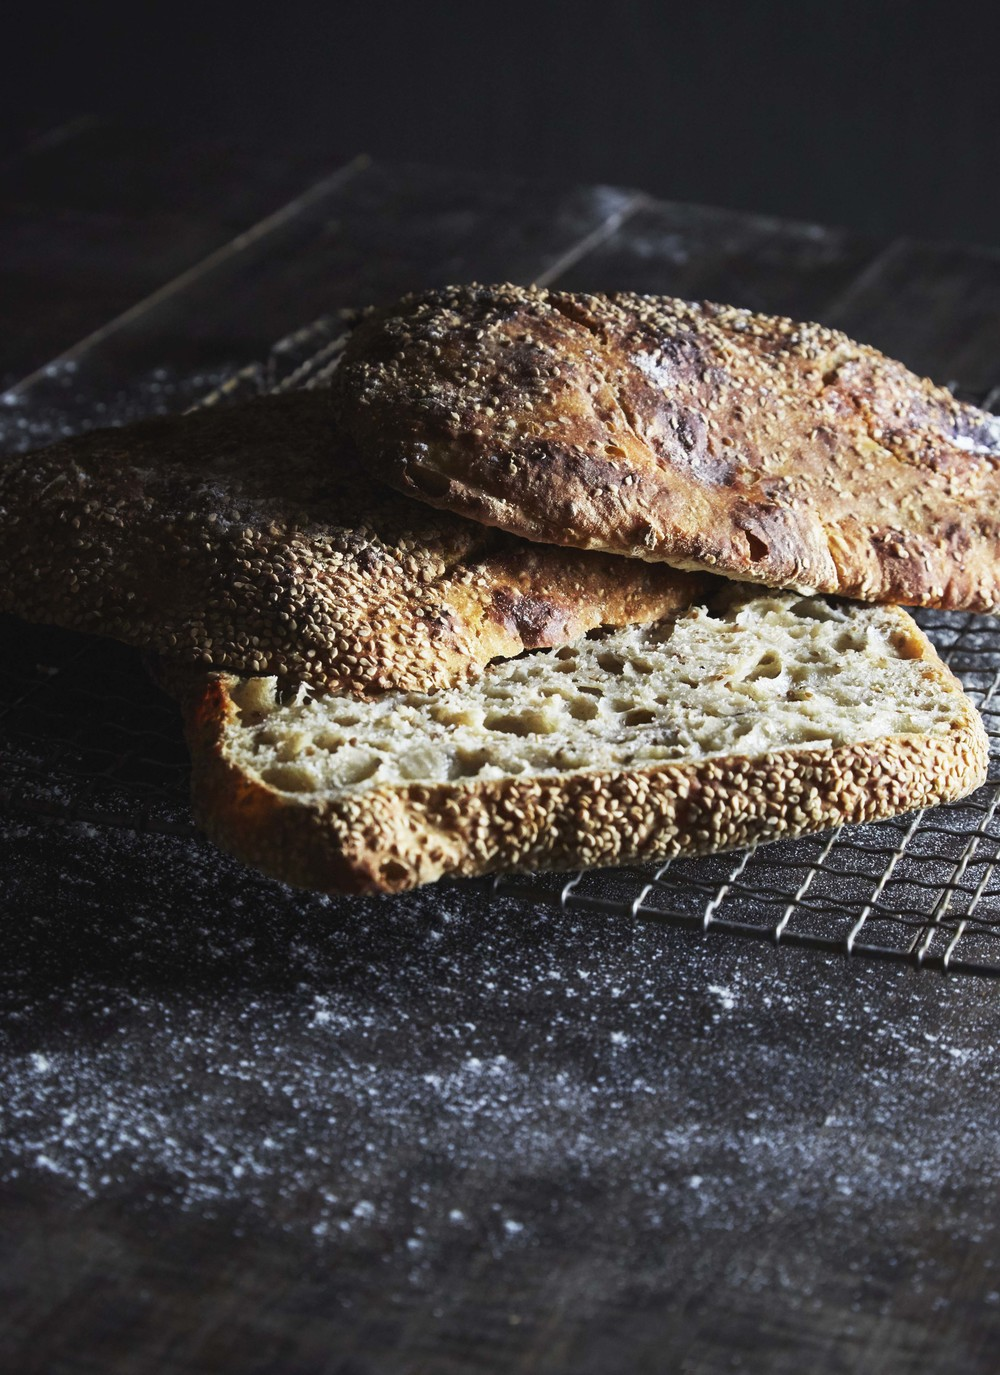 Sesame seed bread from Handwerk, editorial for Matmagasinet NORD.